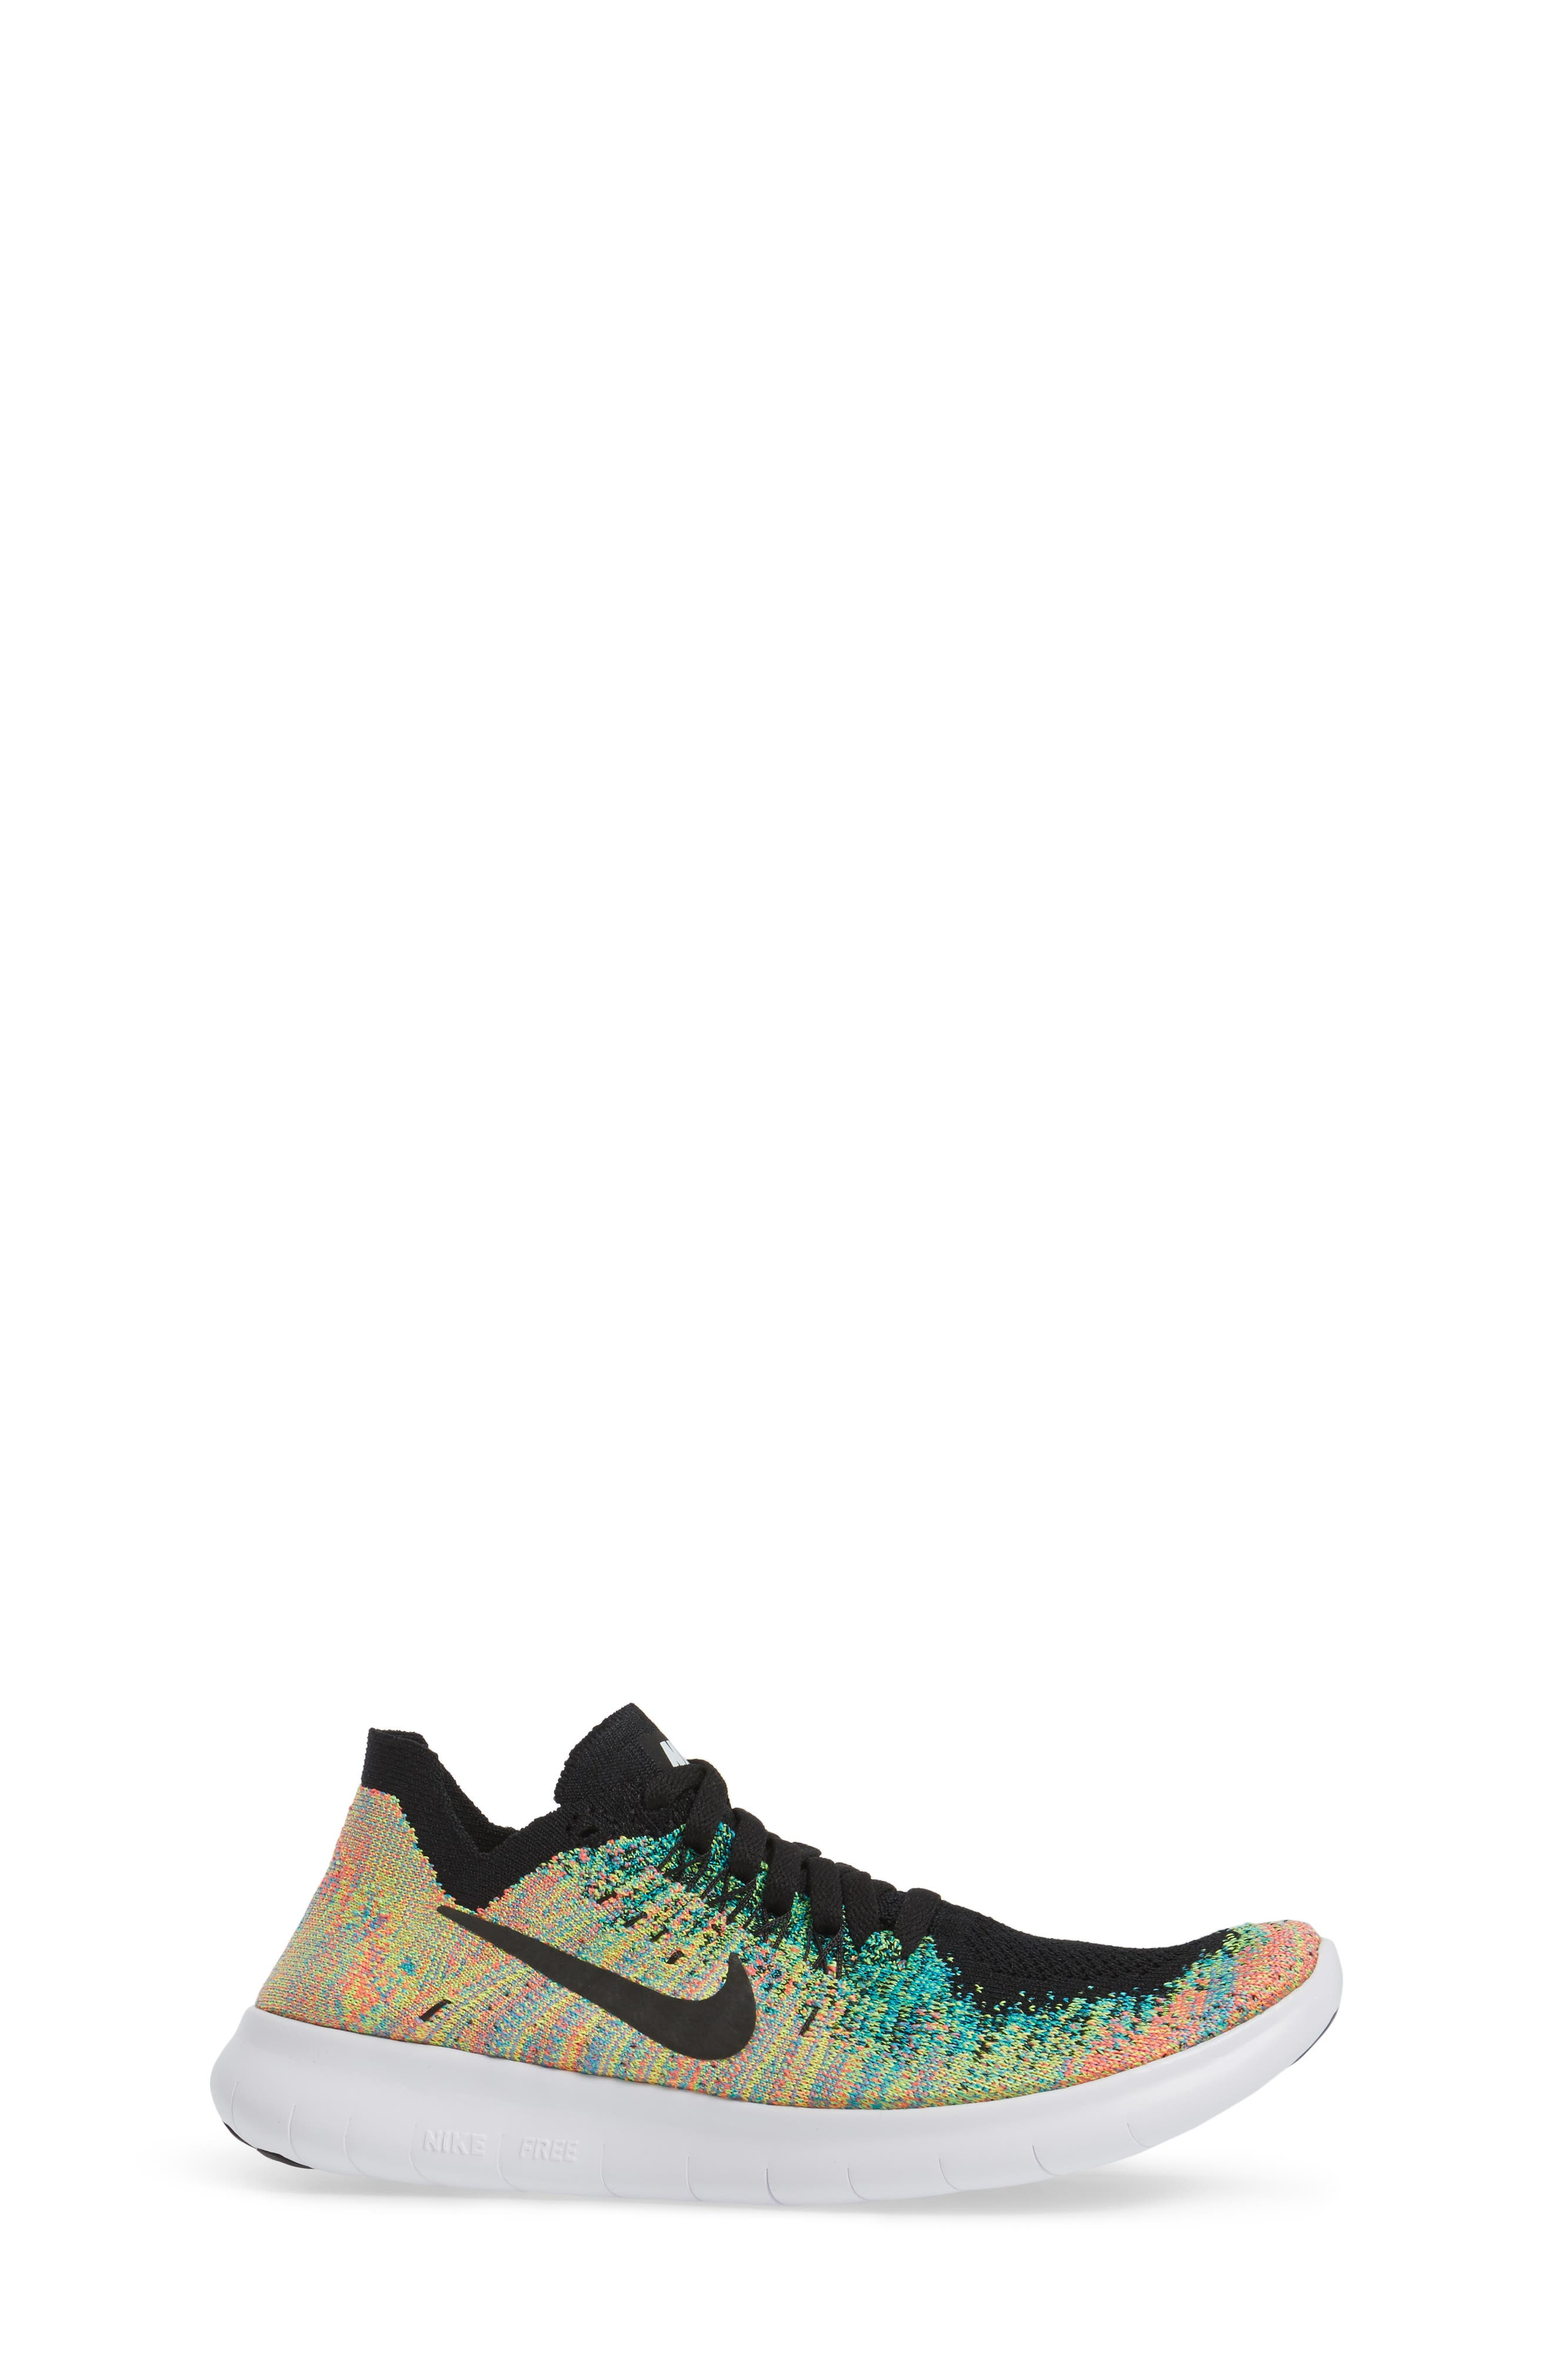 Free RN Flyknit 2017 Running Shoe,                             Alternate thumbnail 3, color,                             001